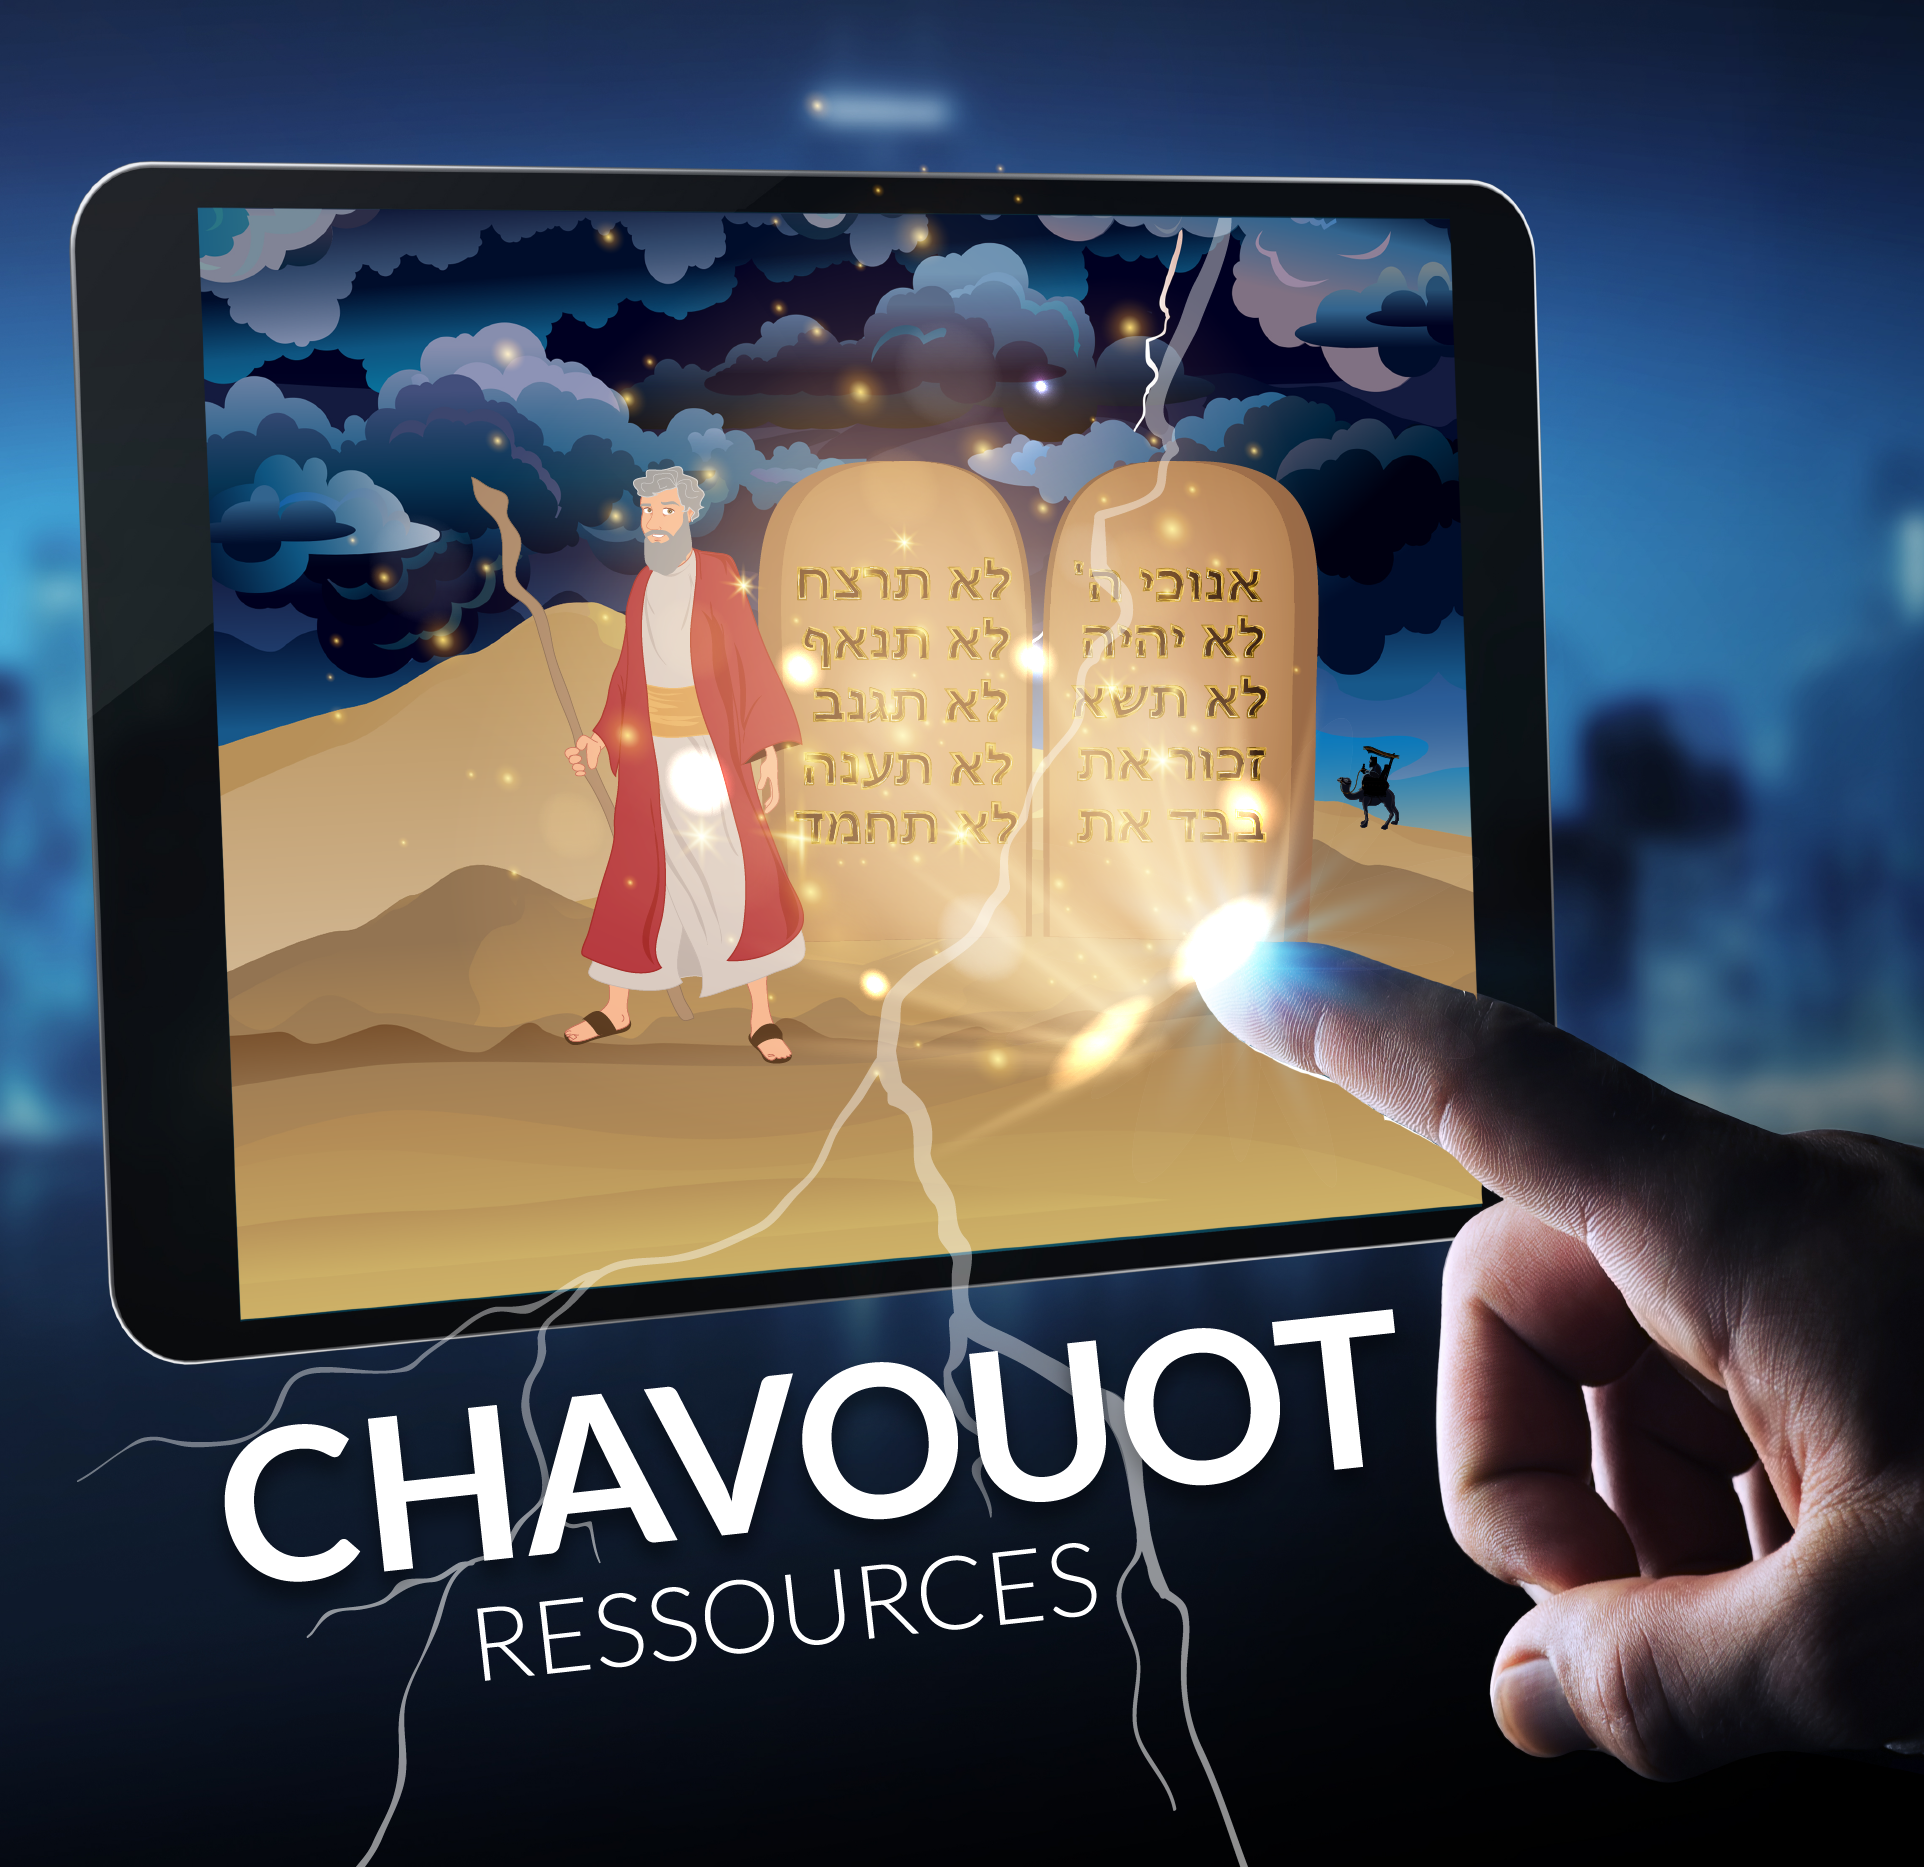 shavuot_resources_french